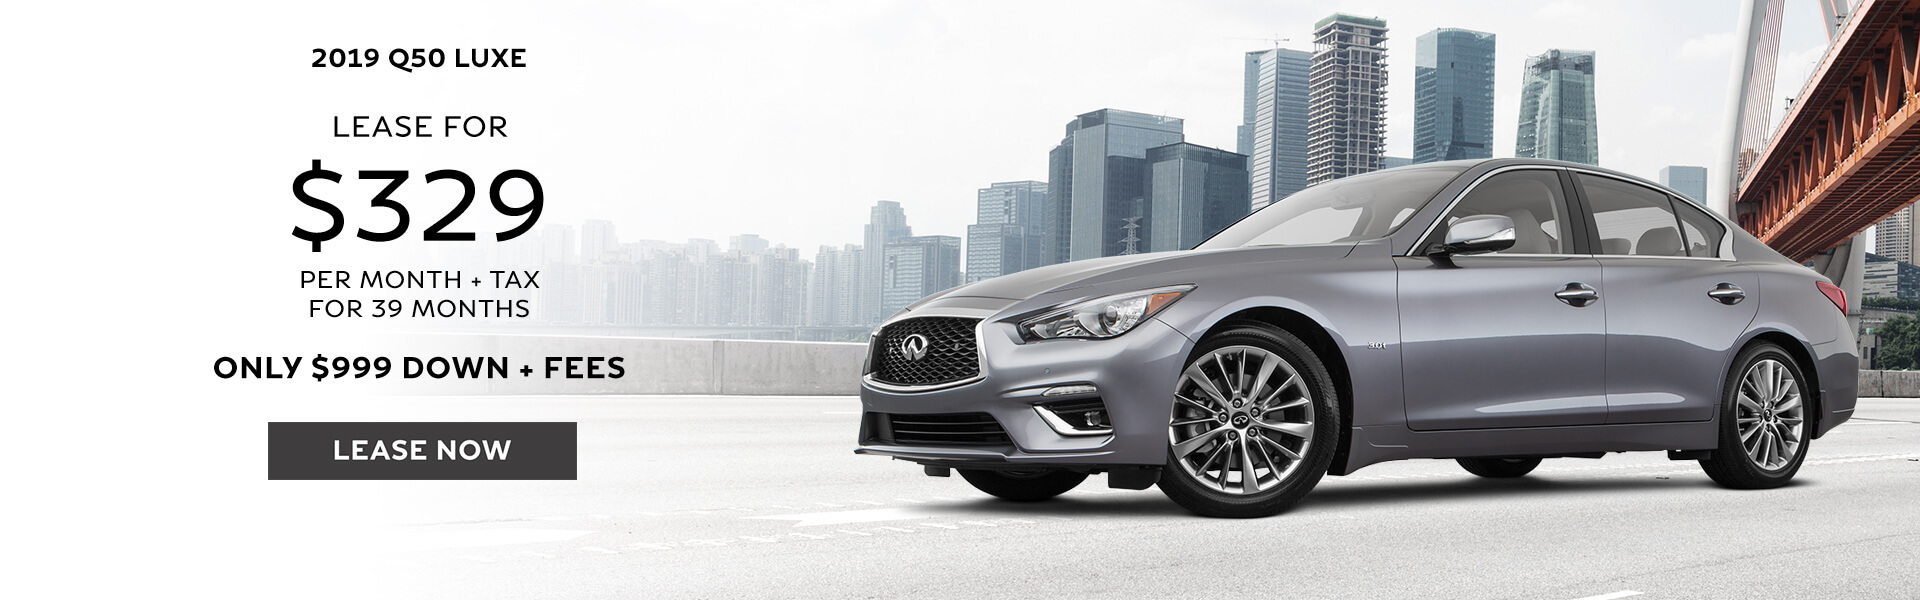 2018 Q50 - Lease for $329